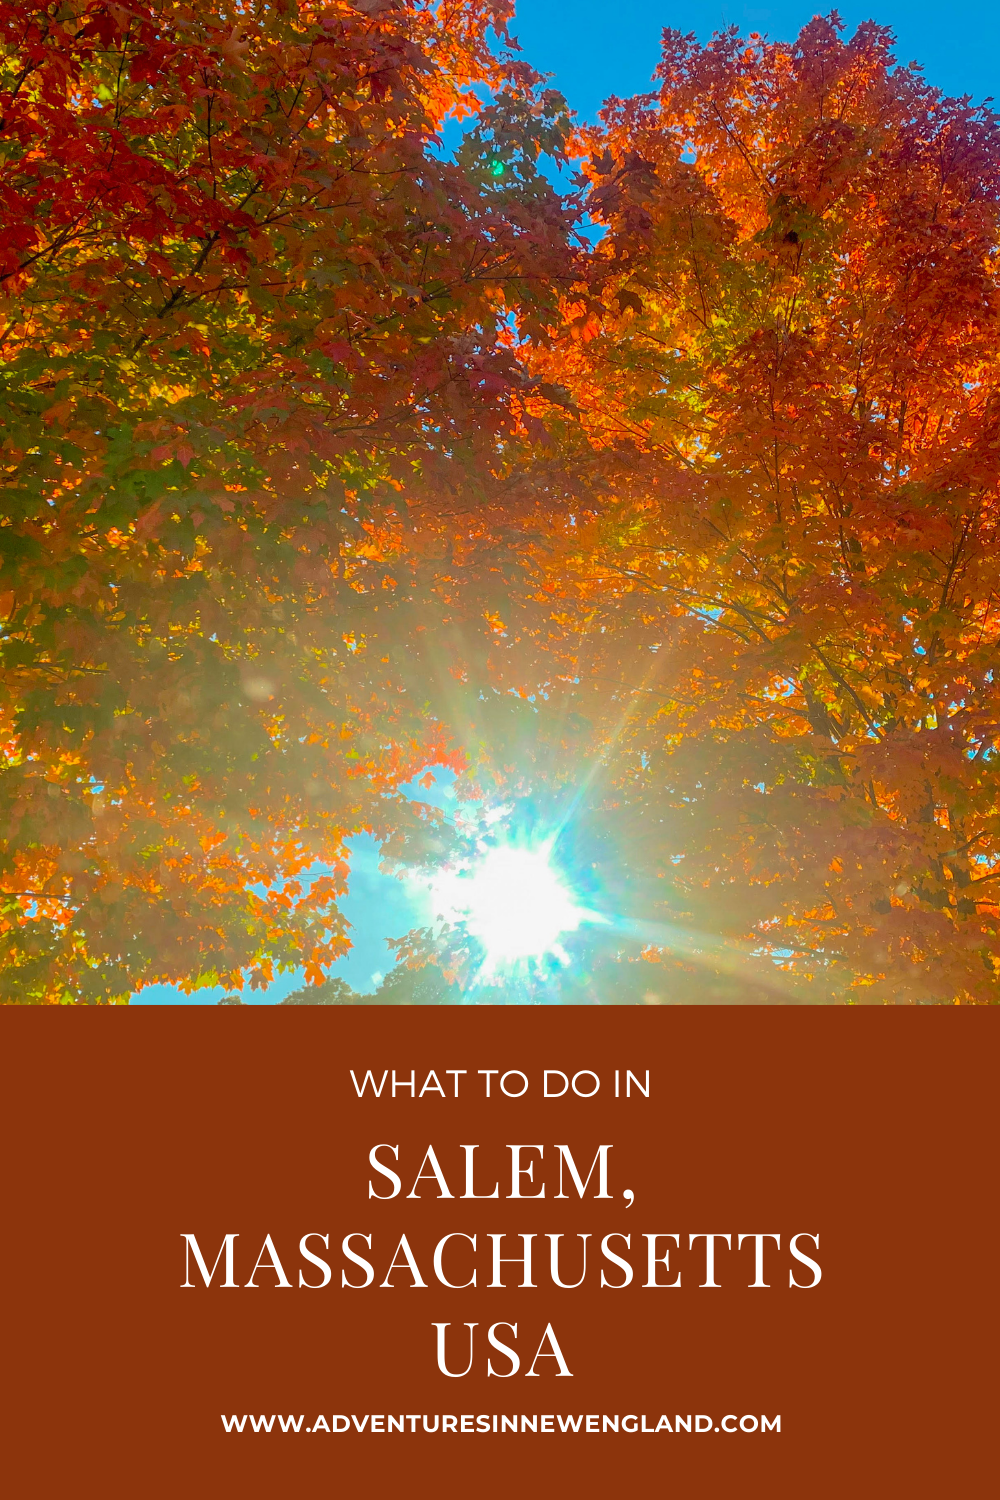 Take a day trip to Salem and explore the history and culture of this Massachusetts town on the water. #thingstodoinMassachusettss #daytripsfromBoston #mass #newenglandtravel